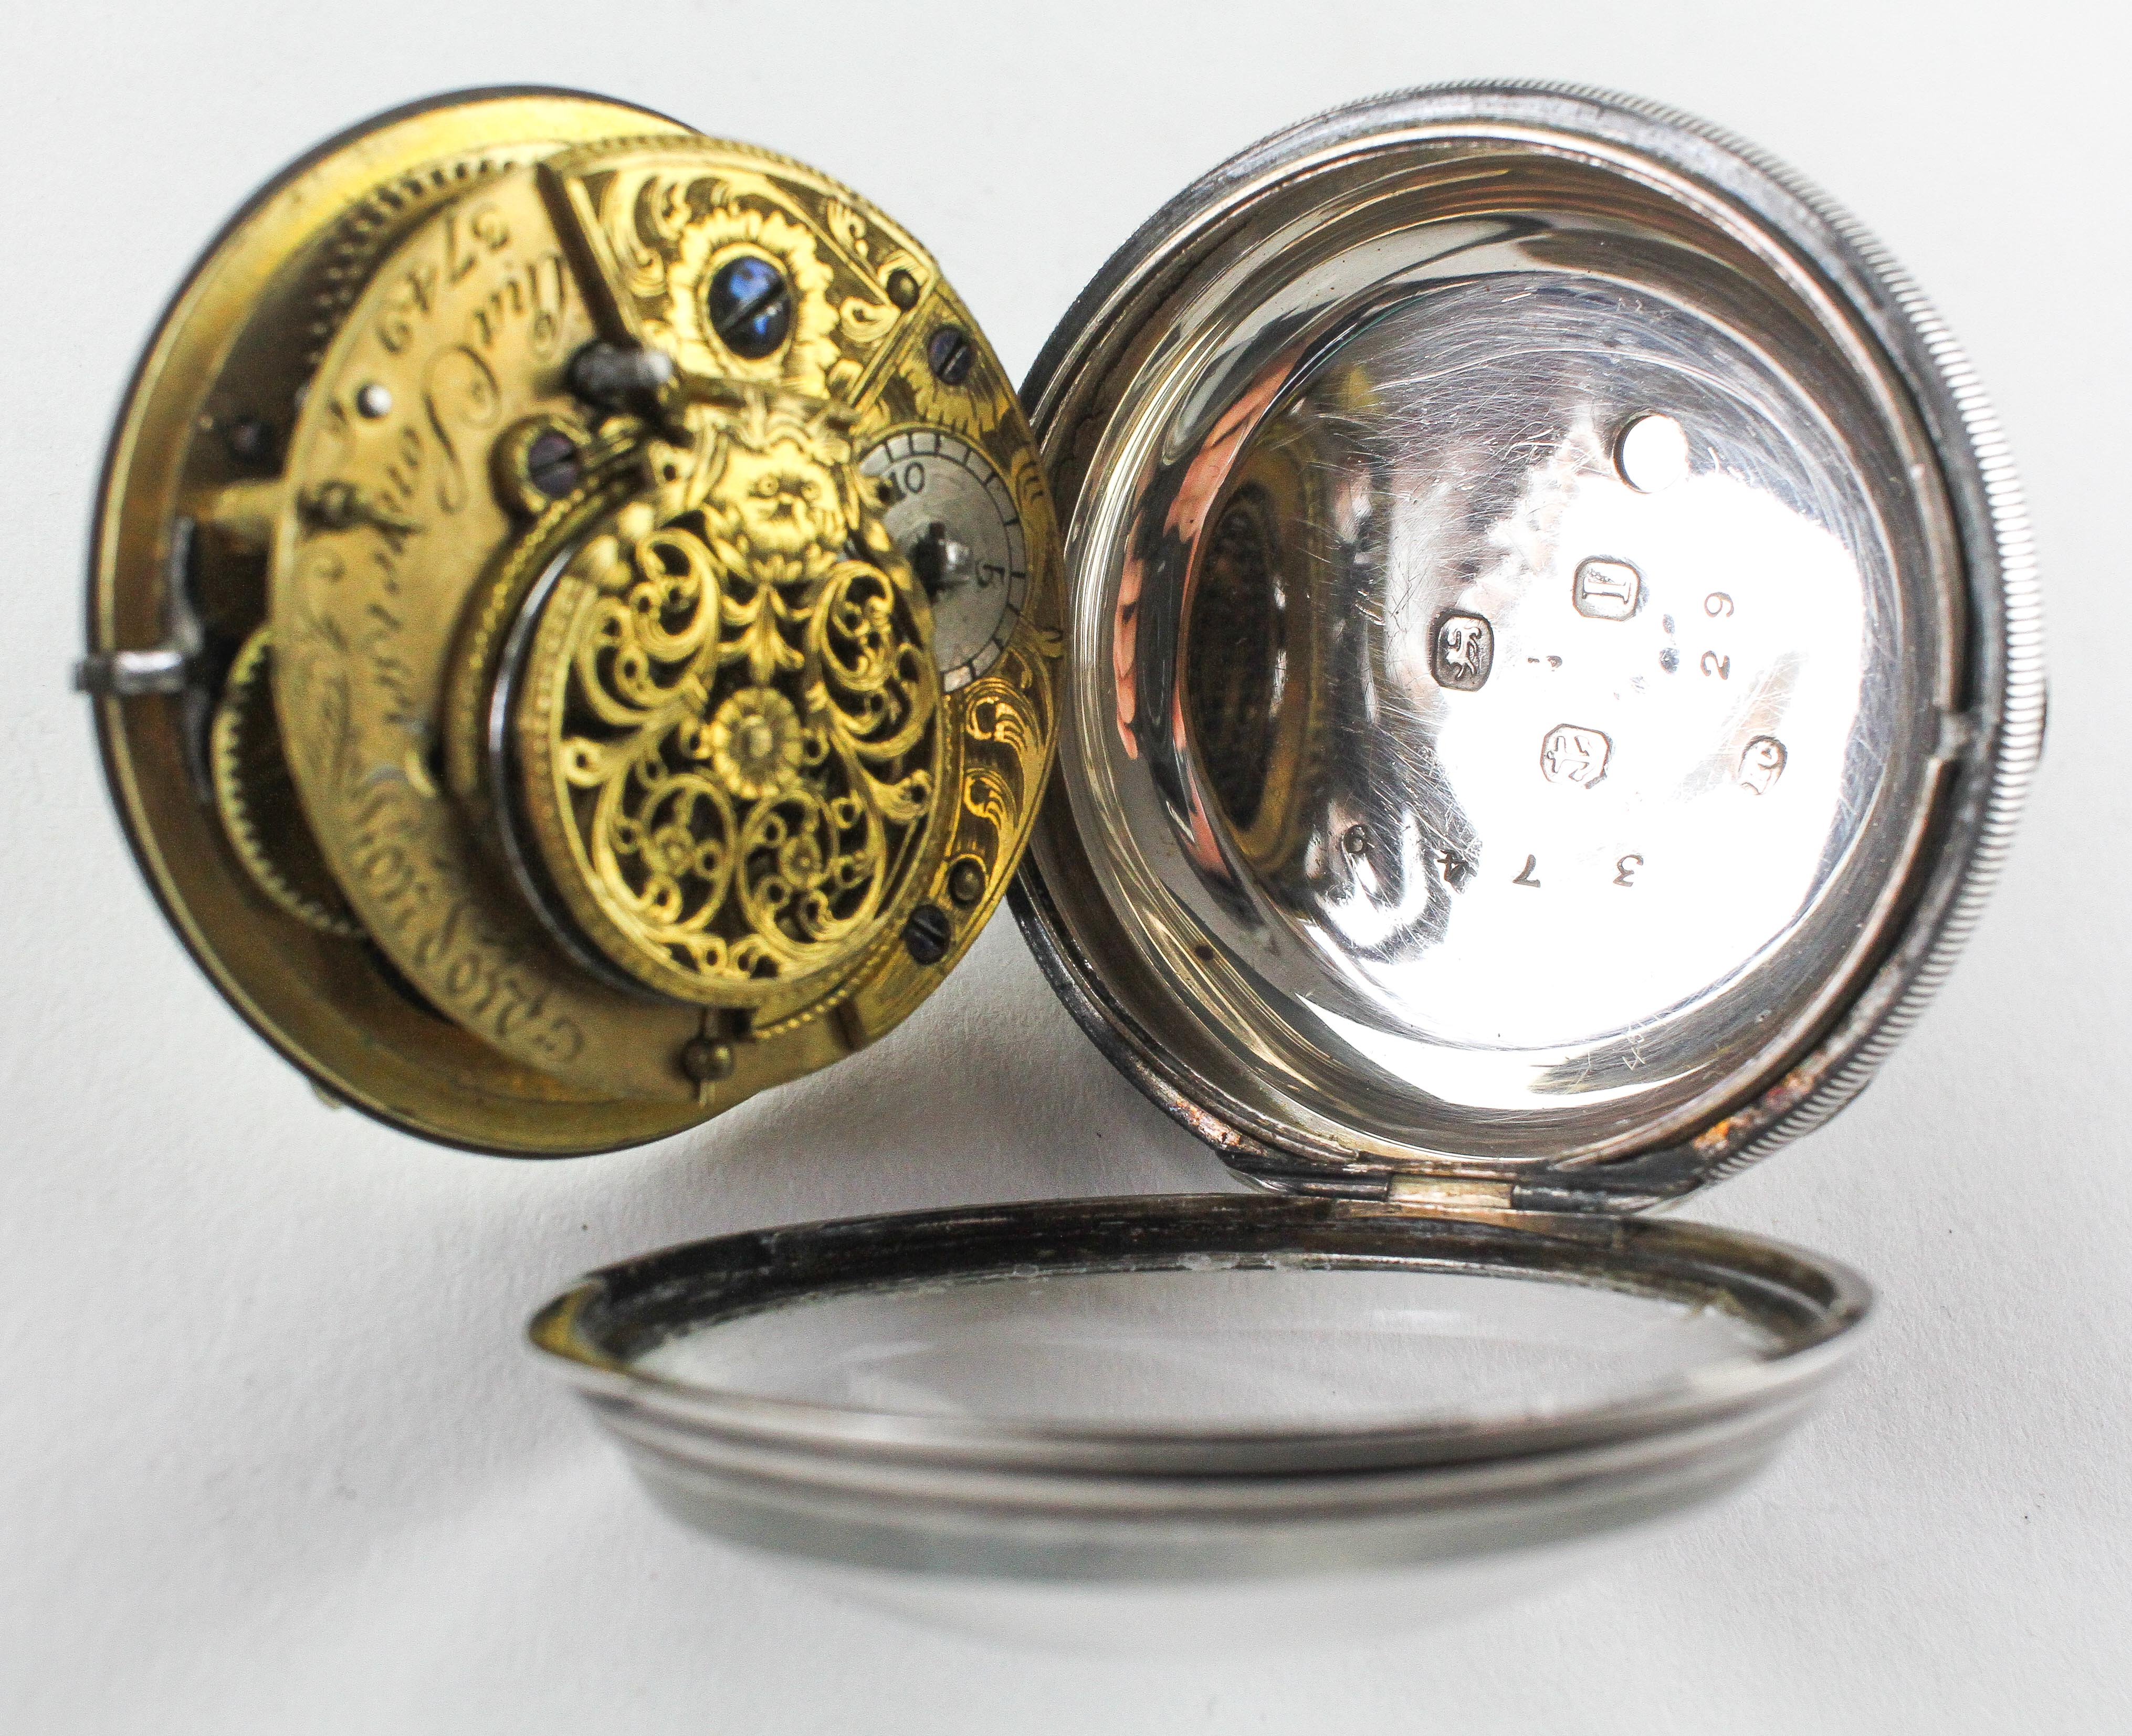 A large open face pocket watch. Circular white dial with roman numerals. Key wound movement. - Image 3 of 3